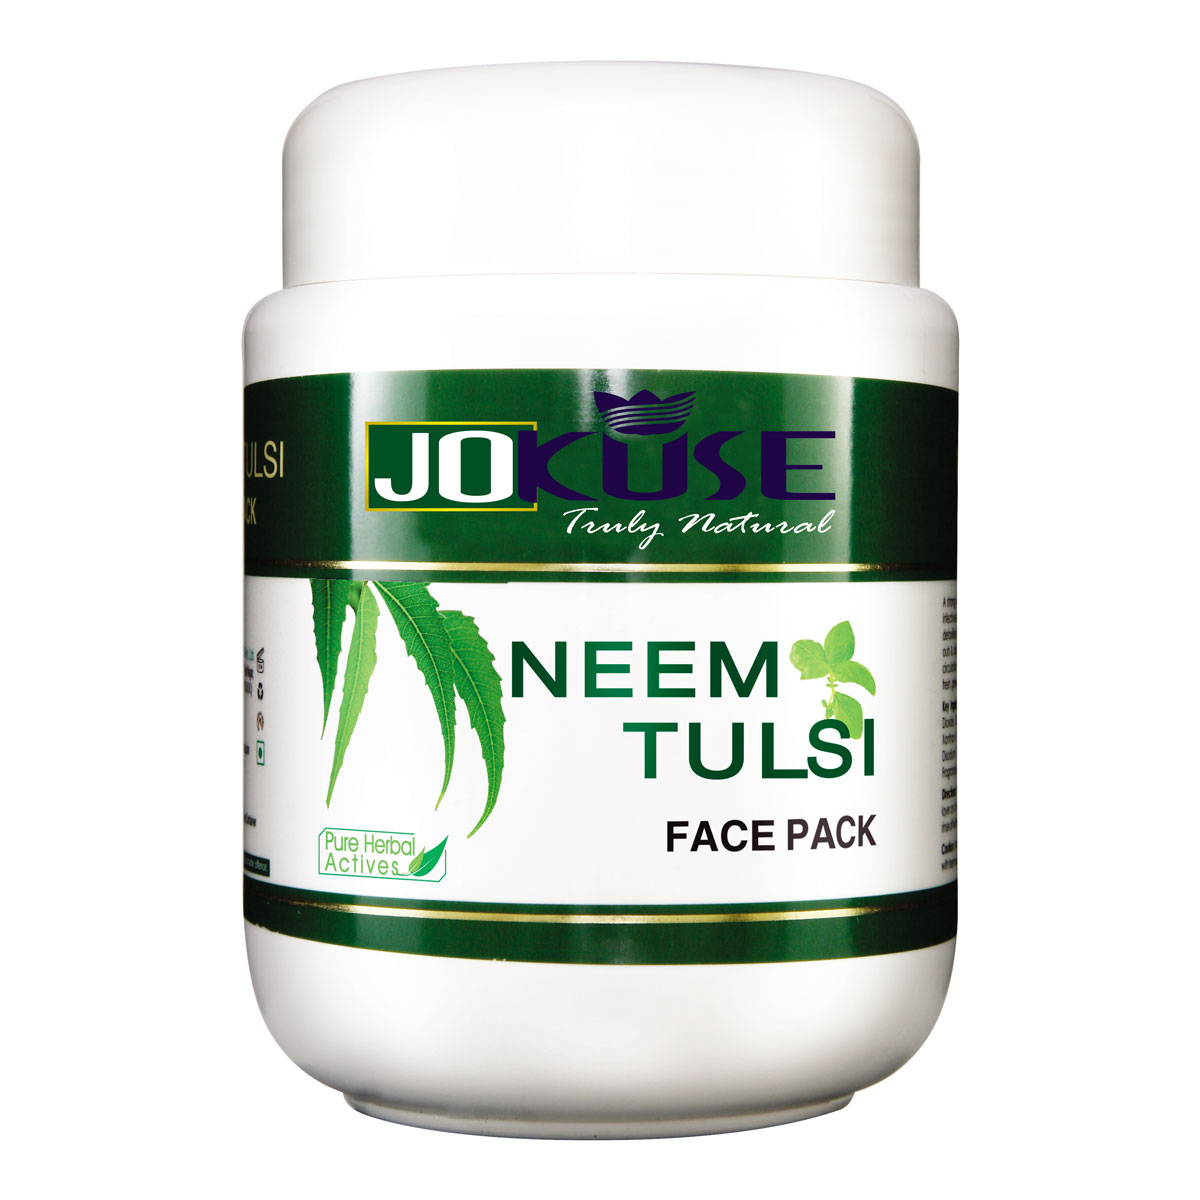 NEEM AND TULSI FACE PACK